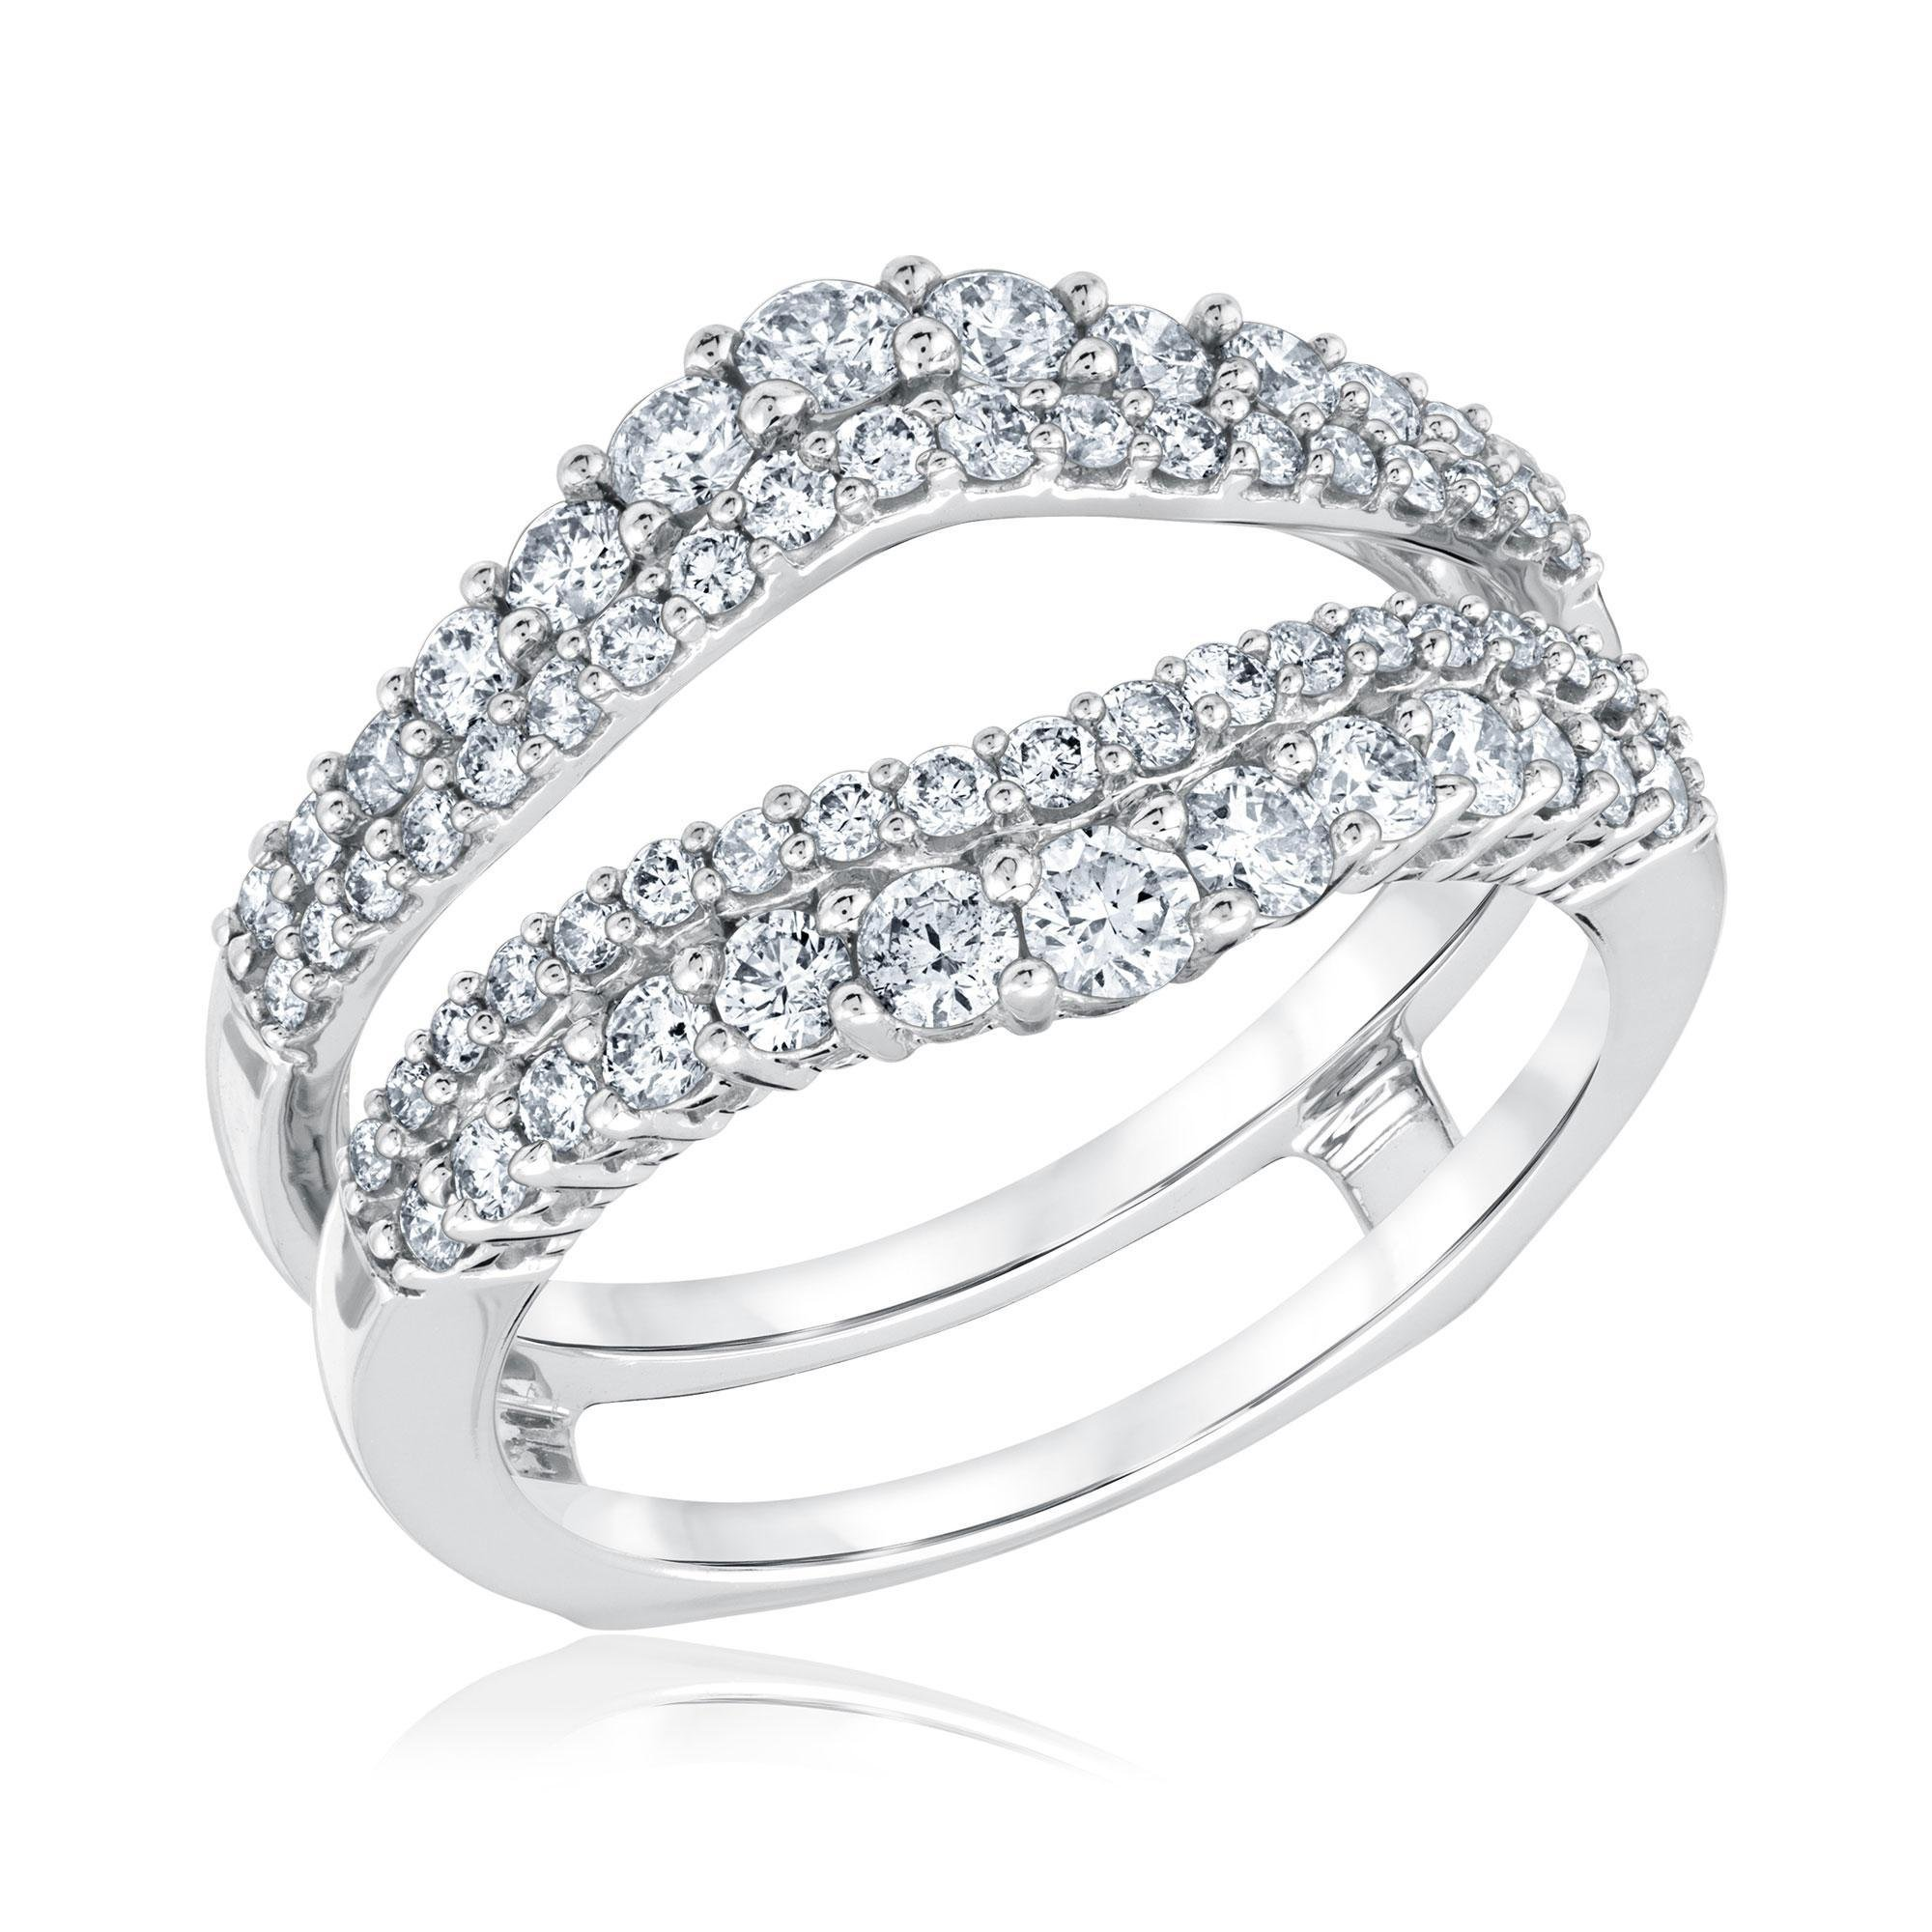 Star Retail 14k White Gold Plated Double Wedding Ring Guard Enhancer with Cubic Zirconia …